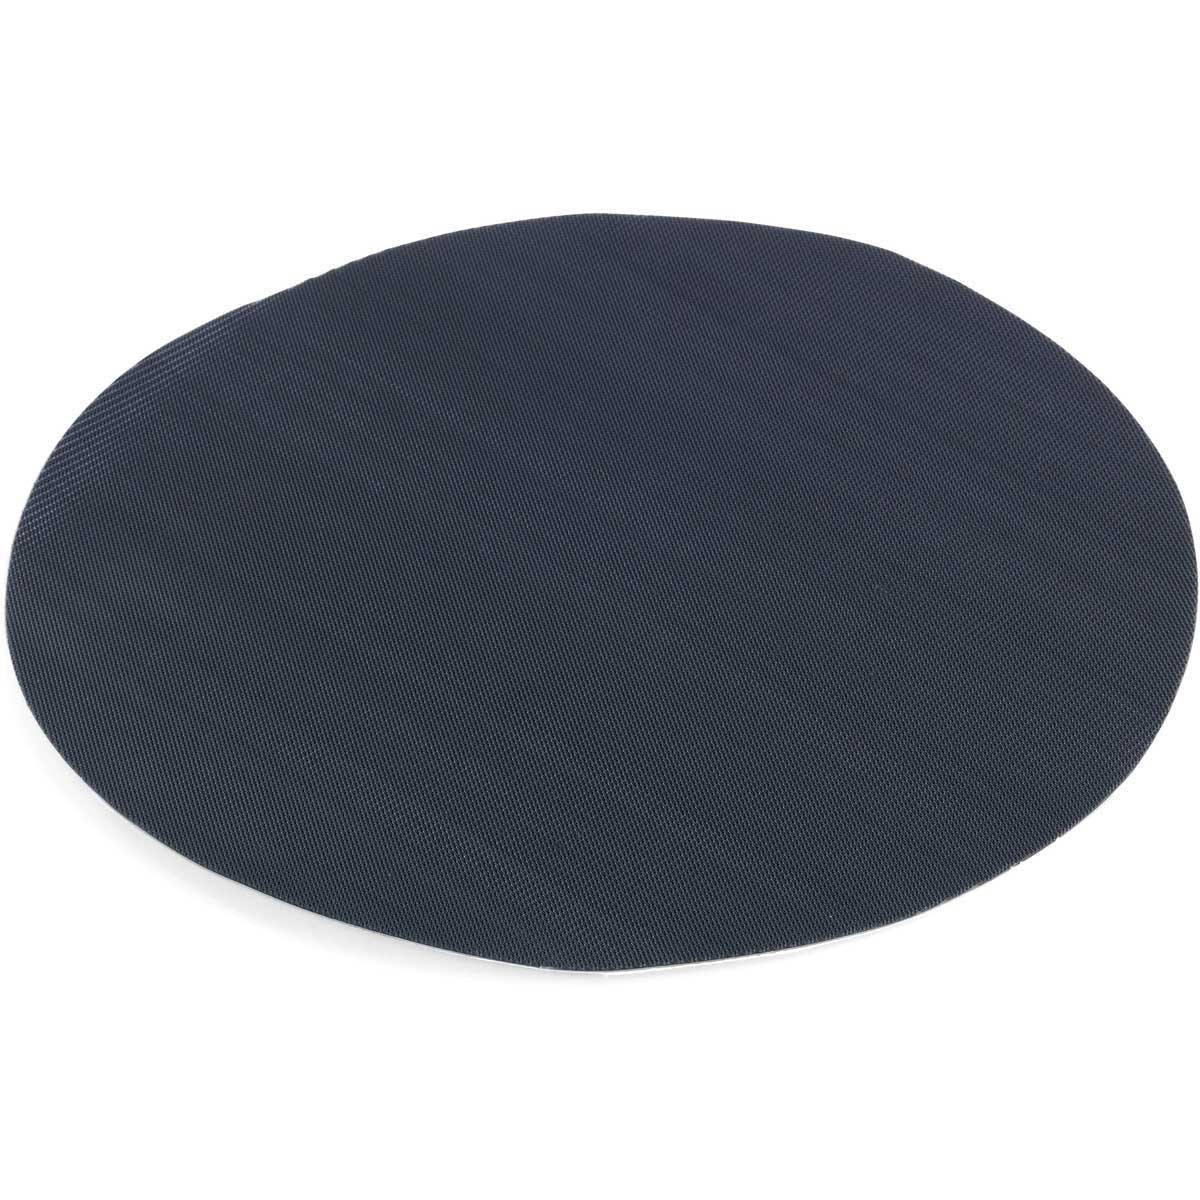 Husqvarna PG 820 Replacement Rubber Pad 502531901